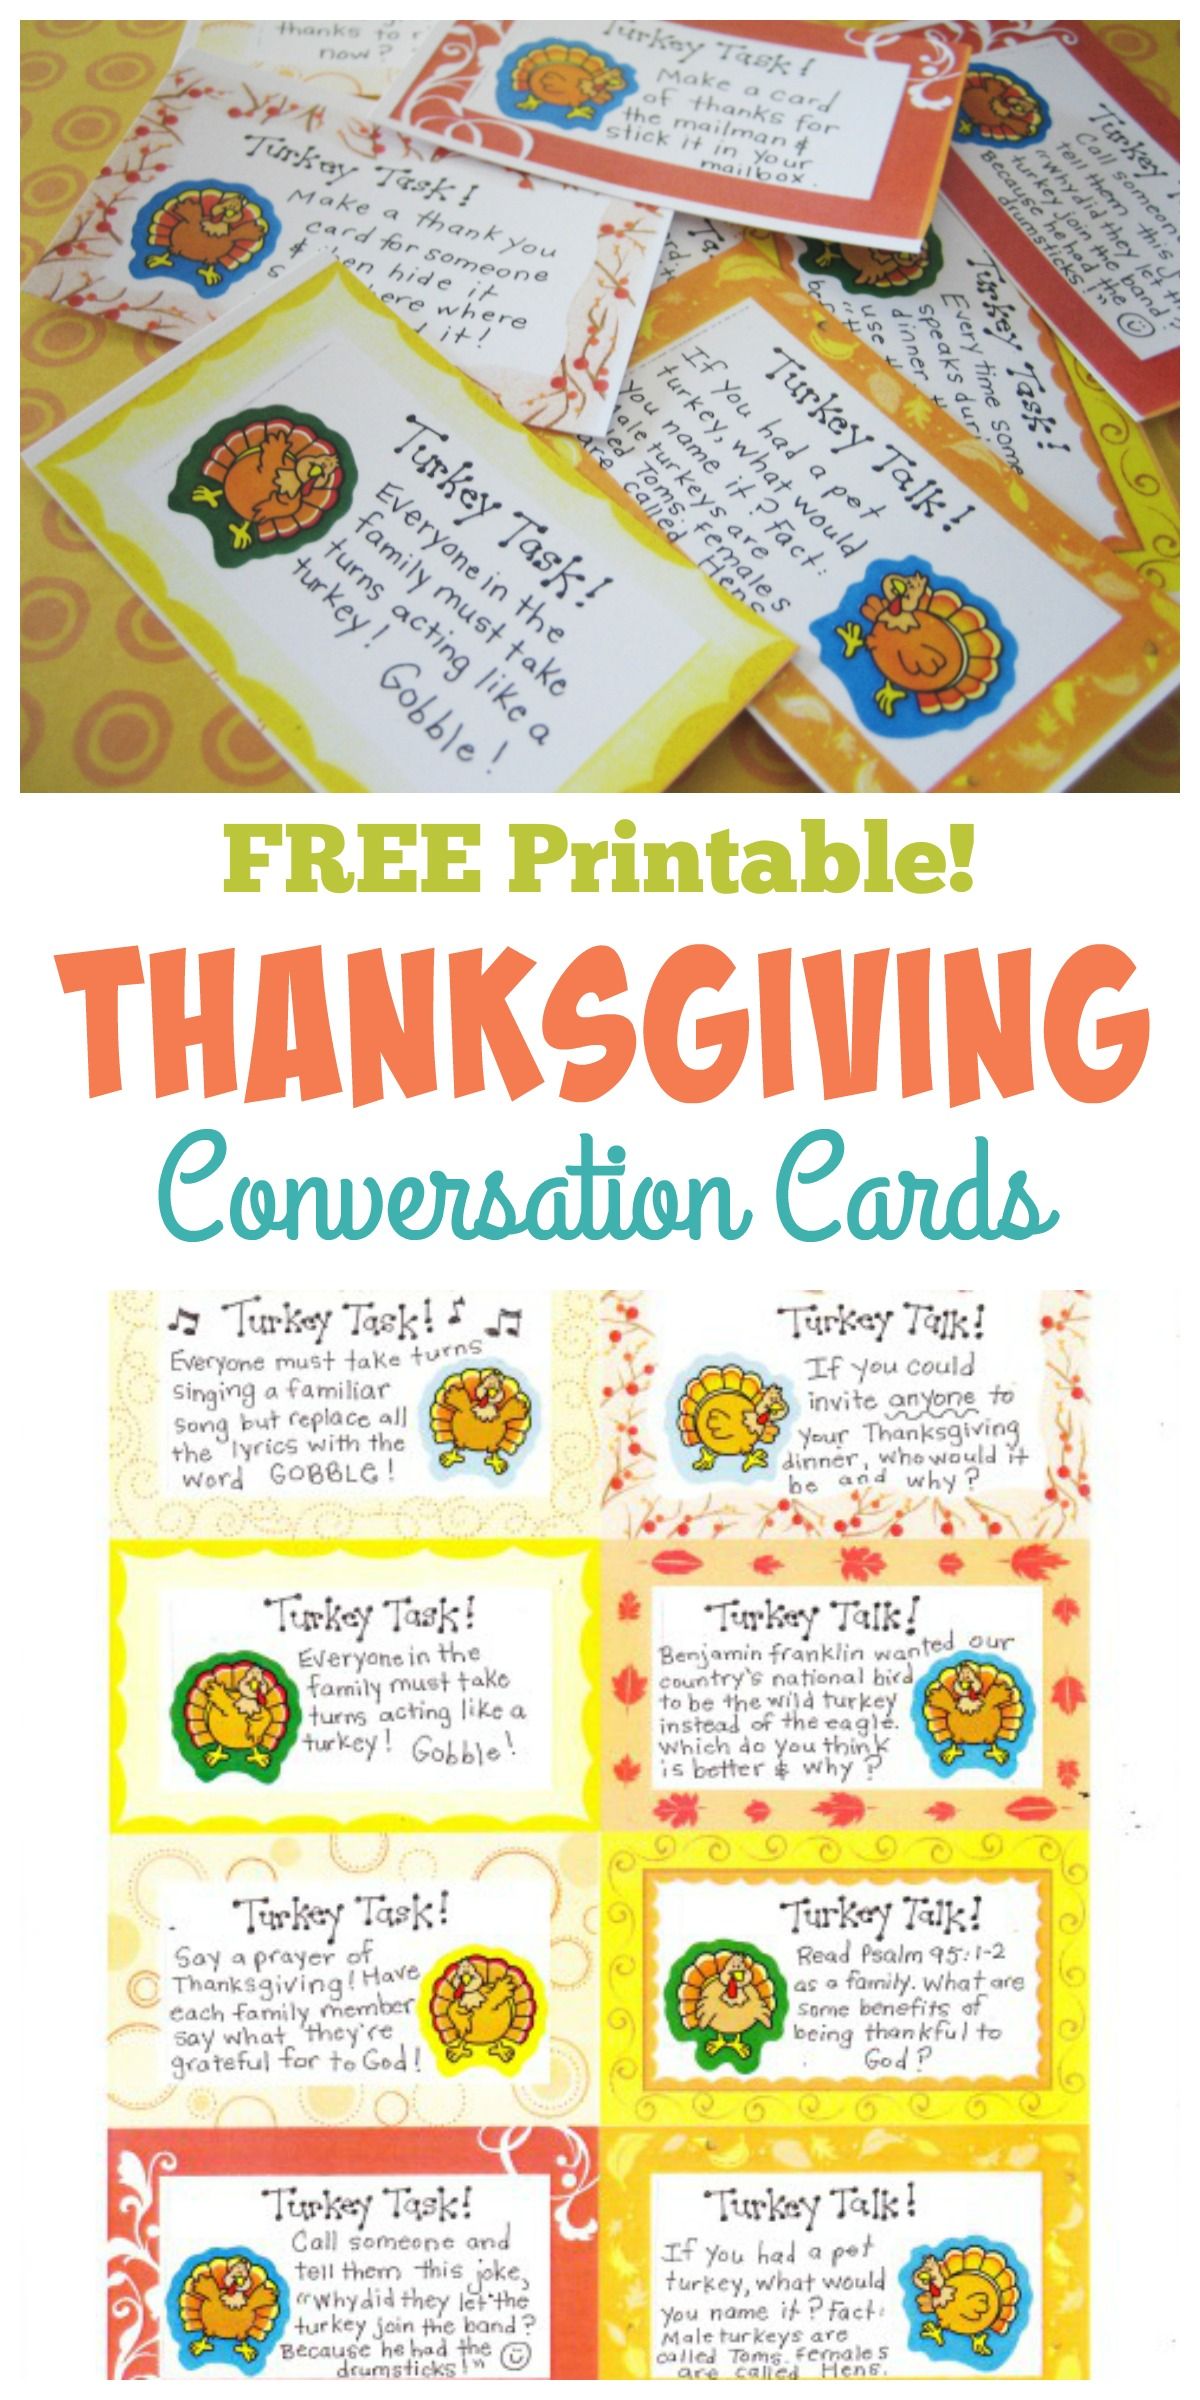 Thanksgiving Conversation Cards